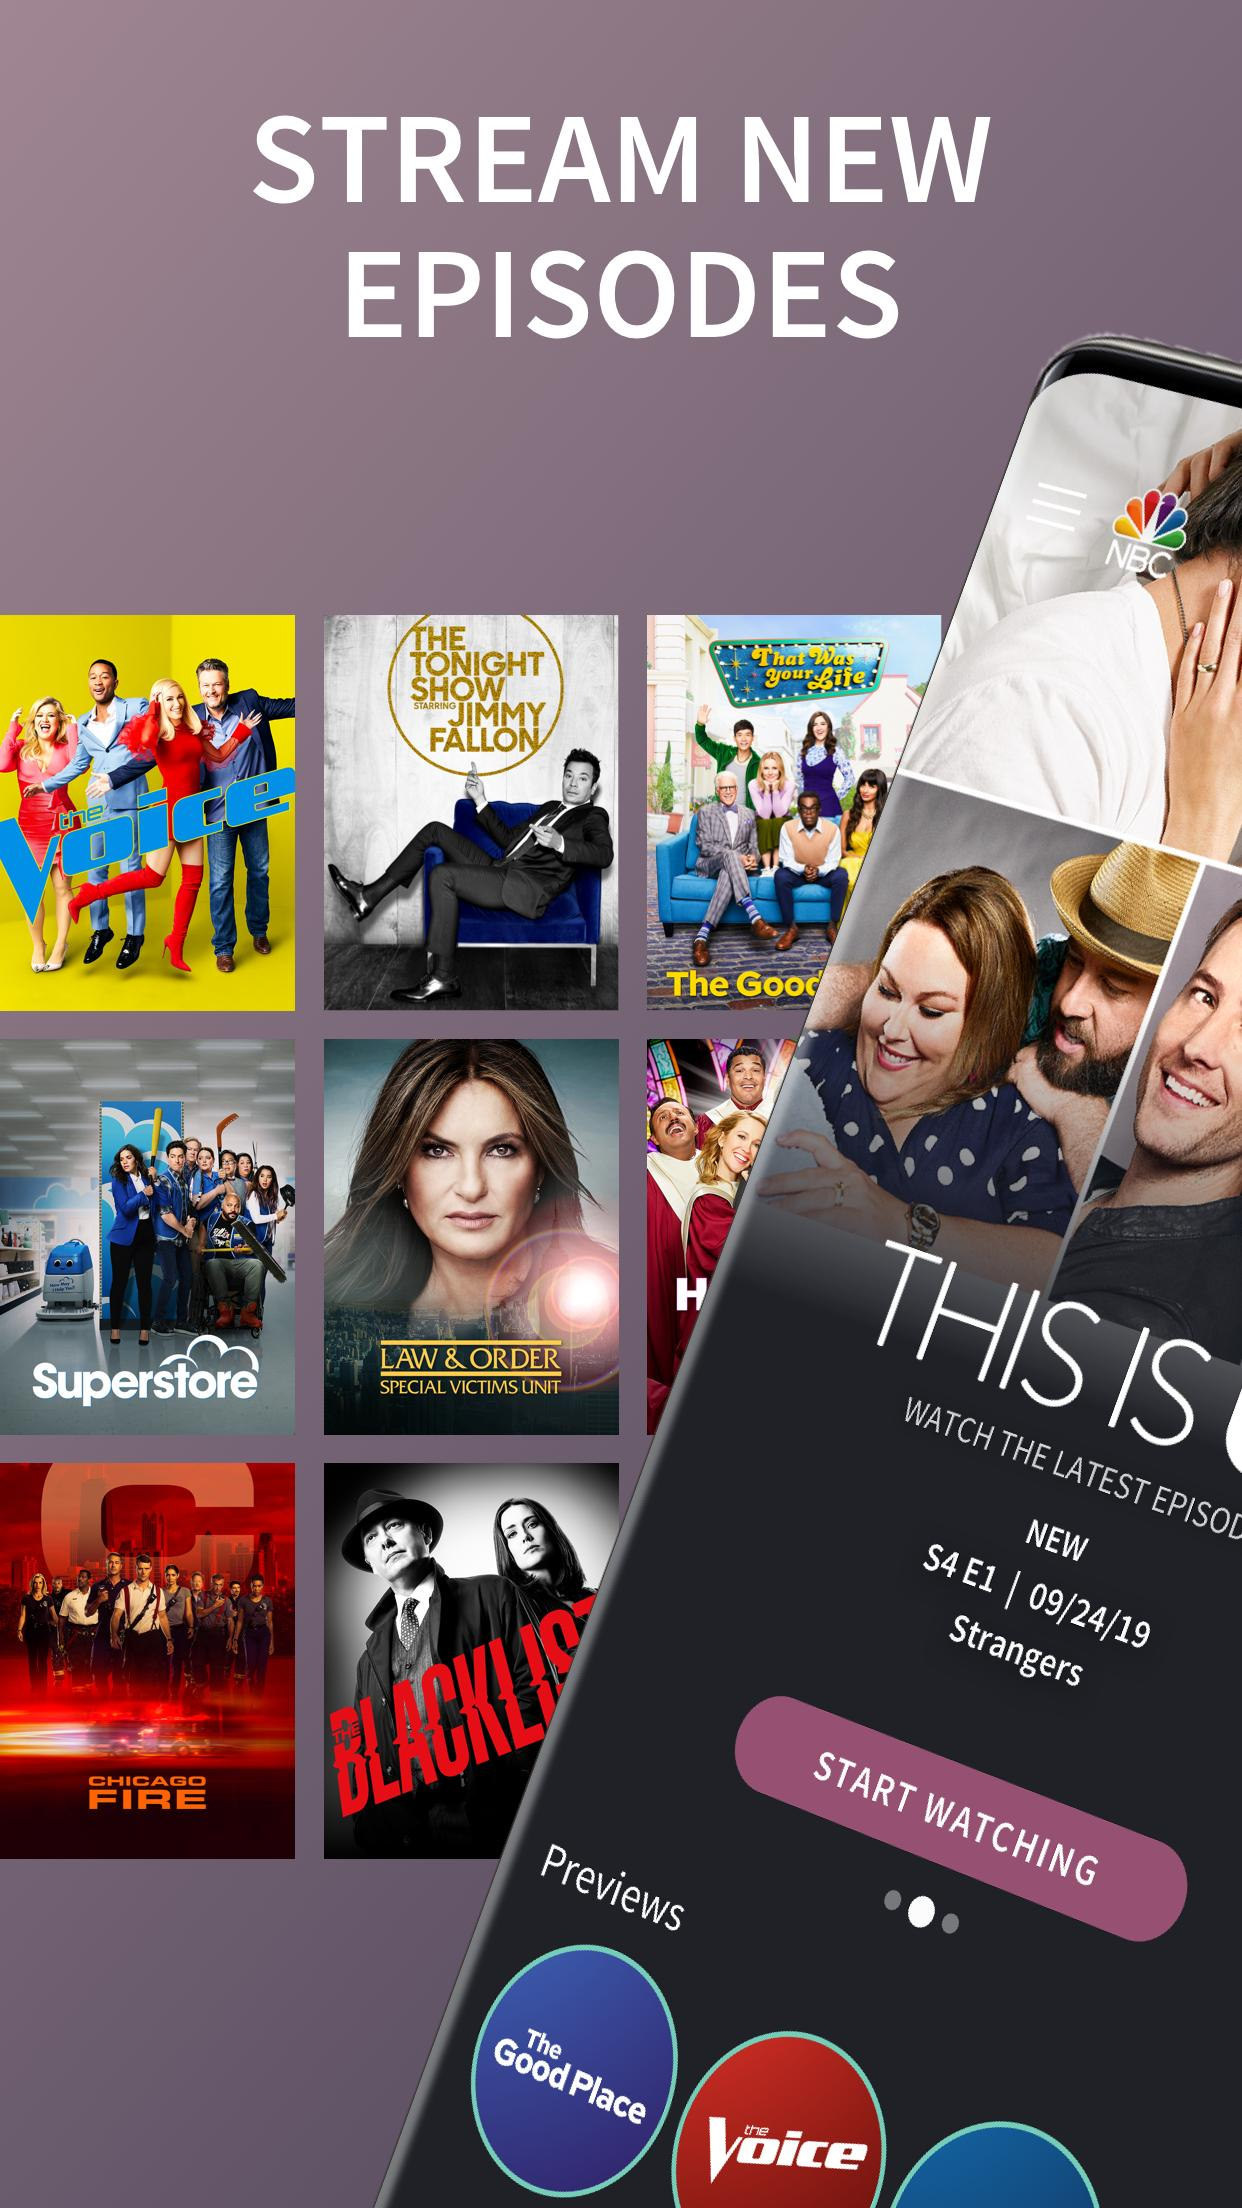 The NBC App - Stream Live TV and Episodes for Free 7.4.1 Screenshot 1